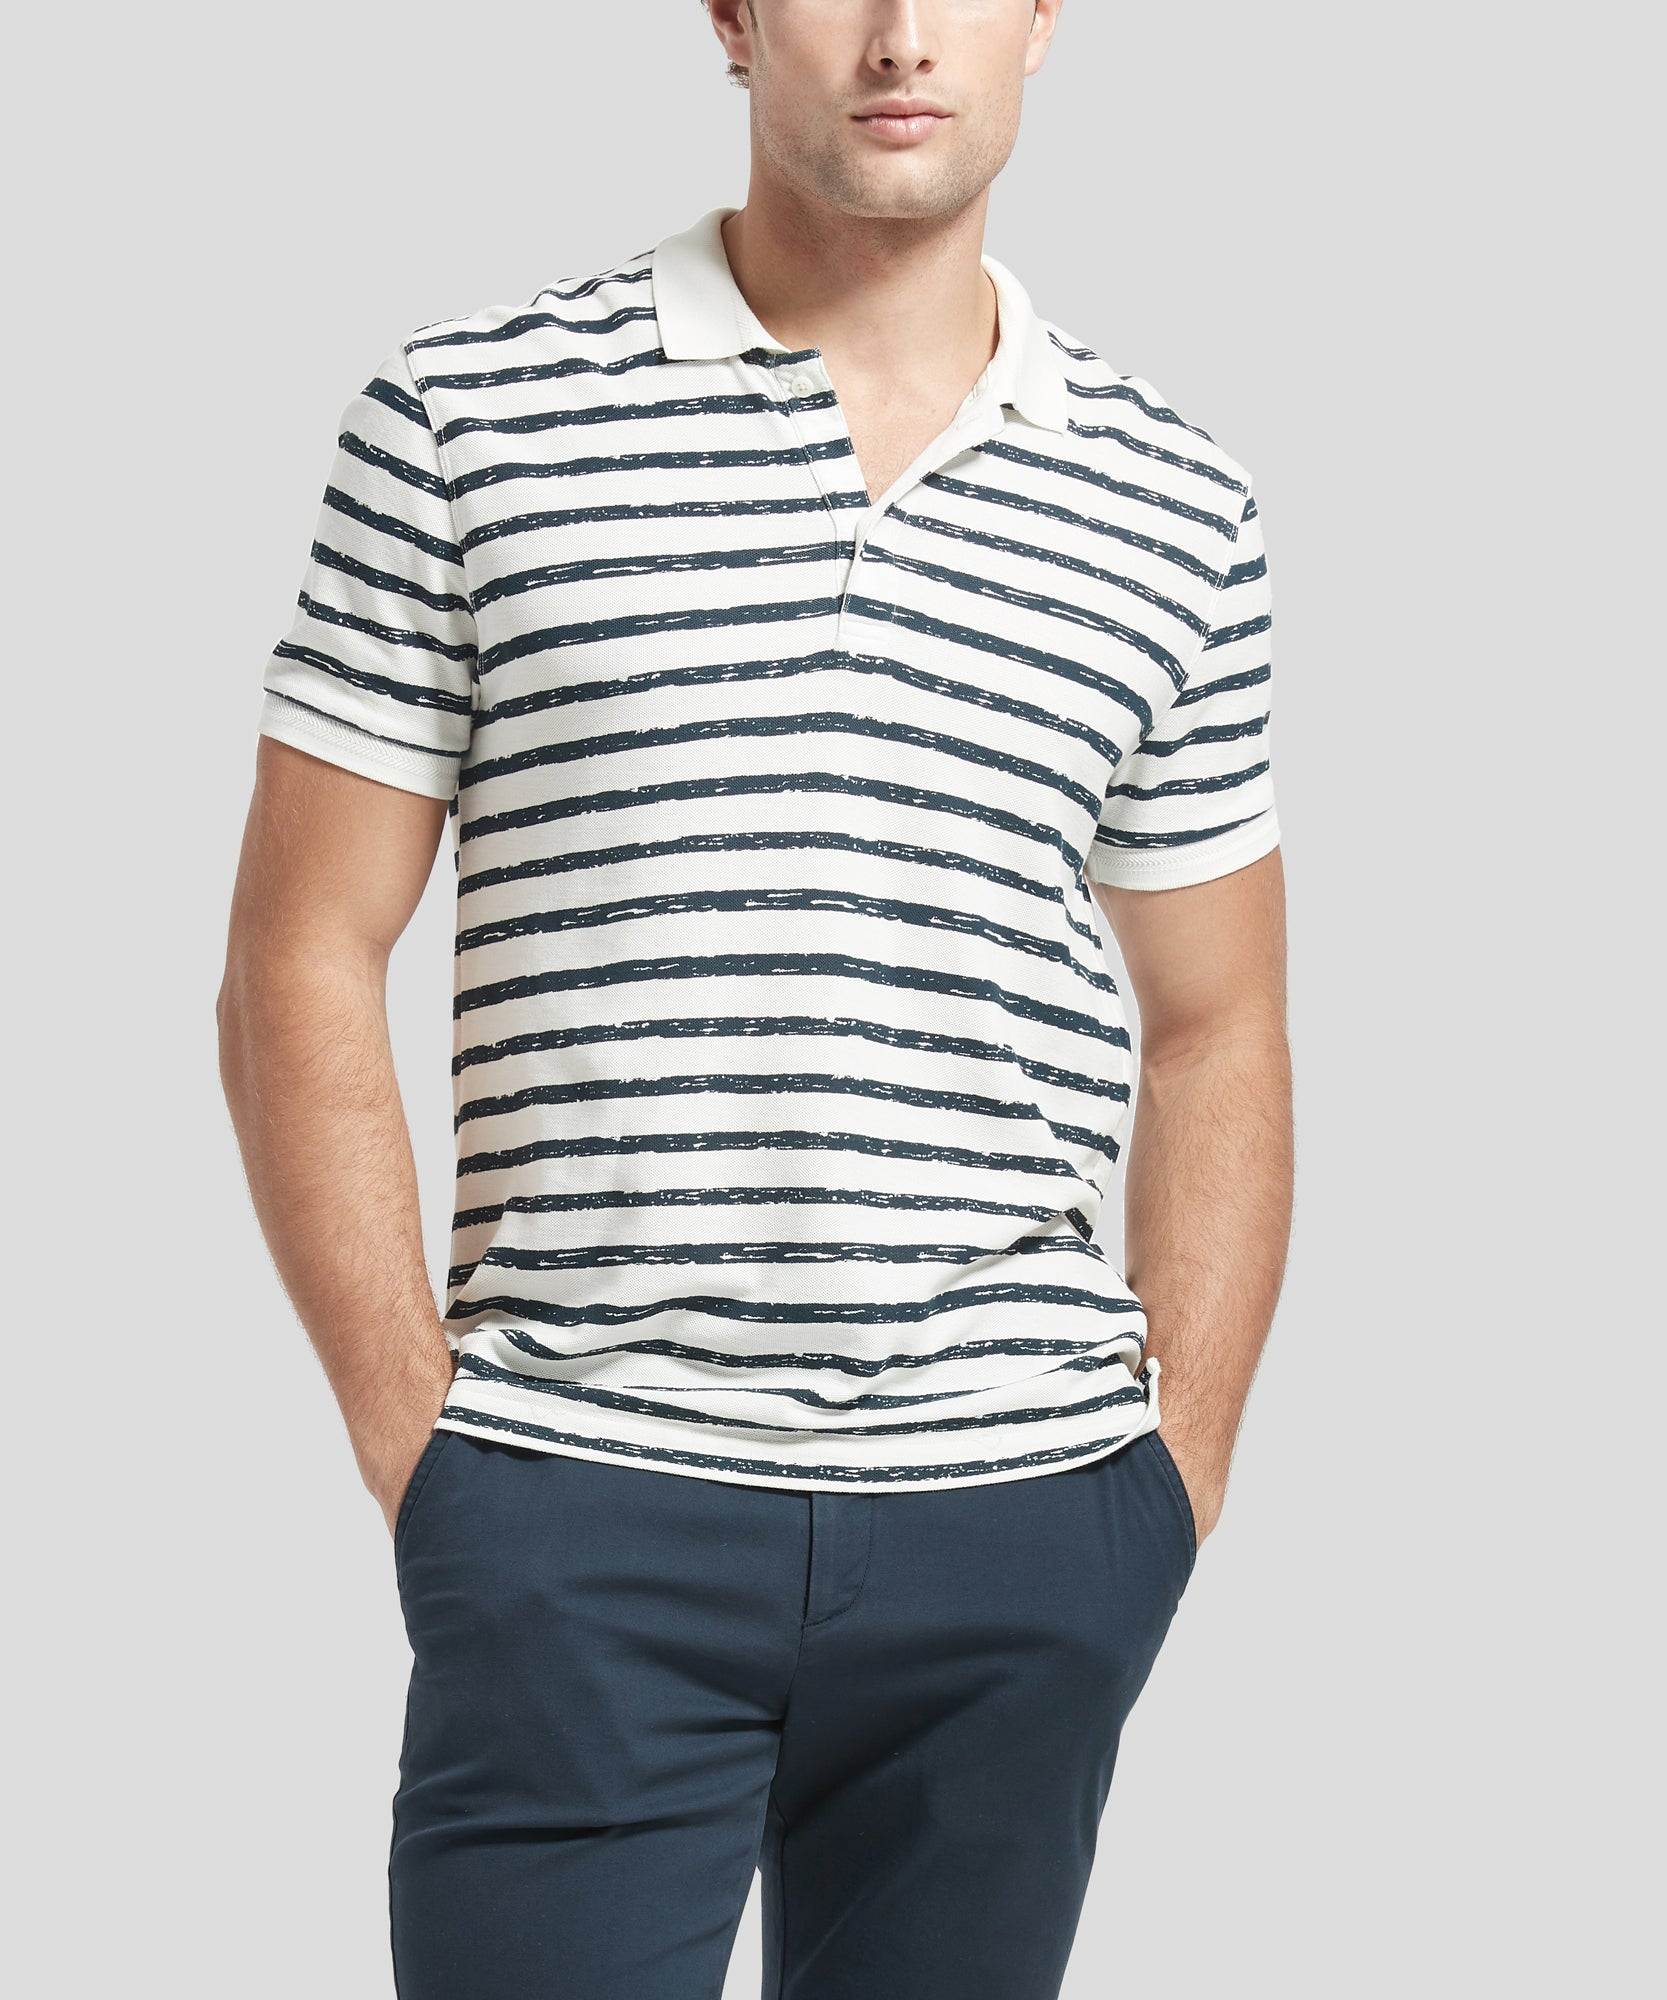 Chalk and Midnight Striped Cotton Pique Polo - Men's Polo Shirt by ATM Anthony Thomas Melillo